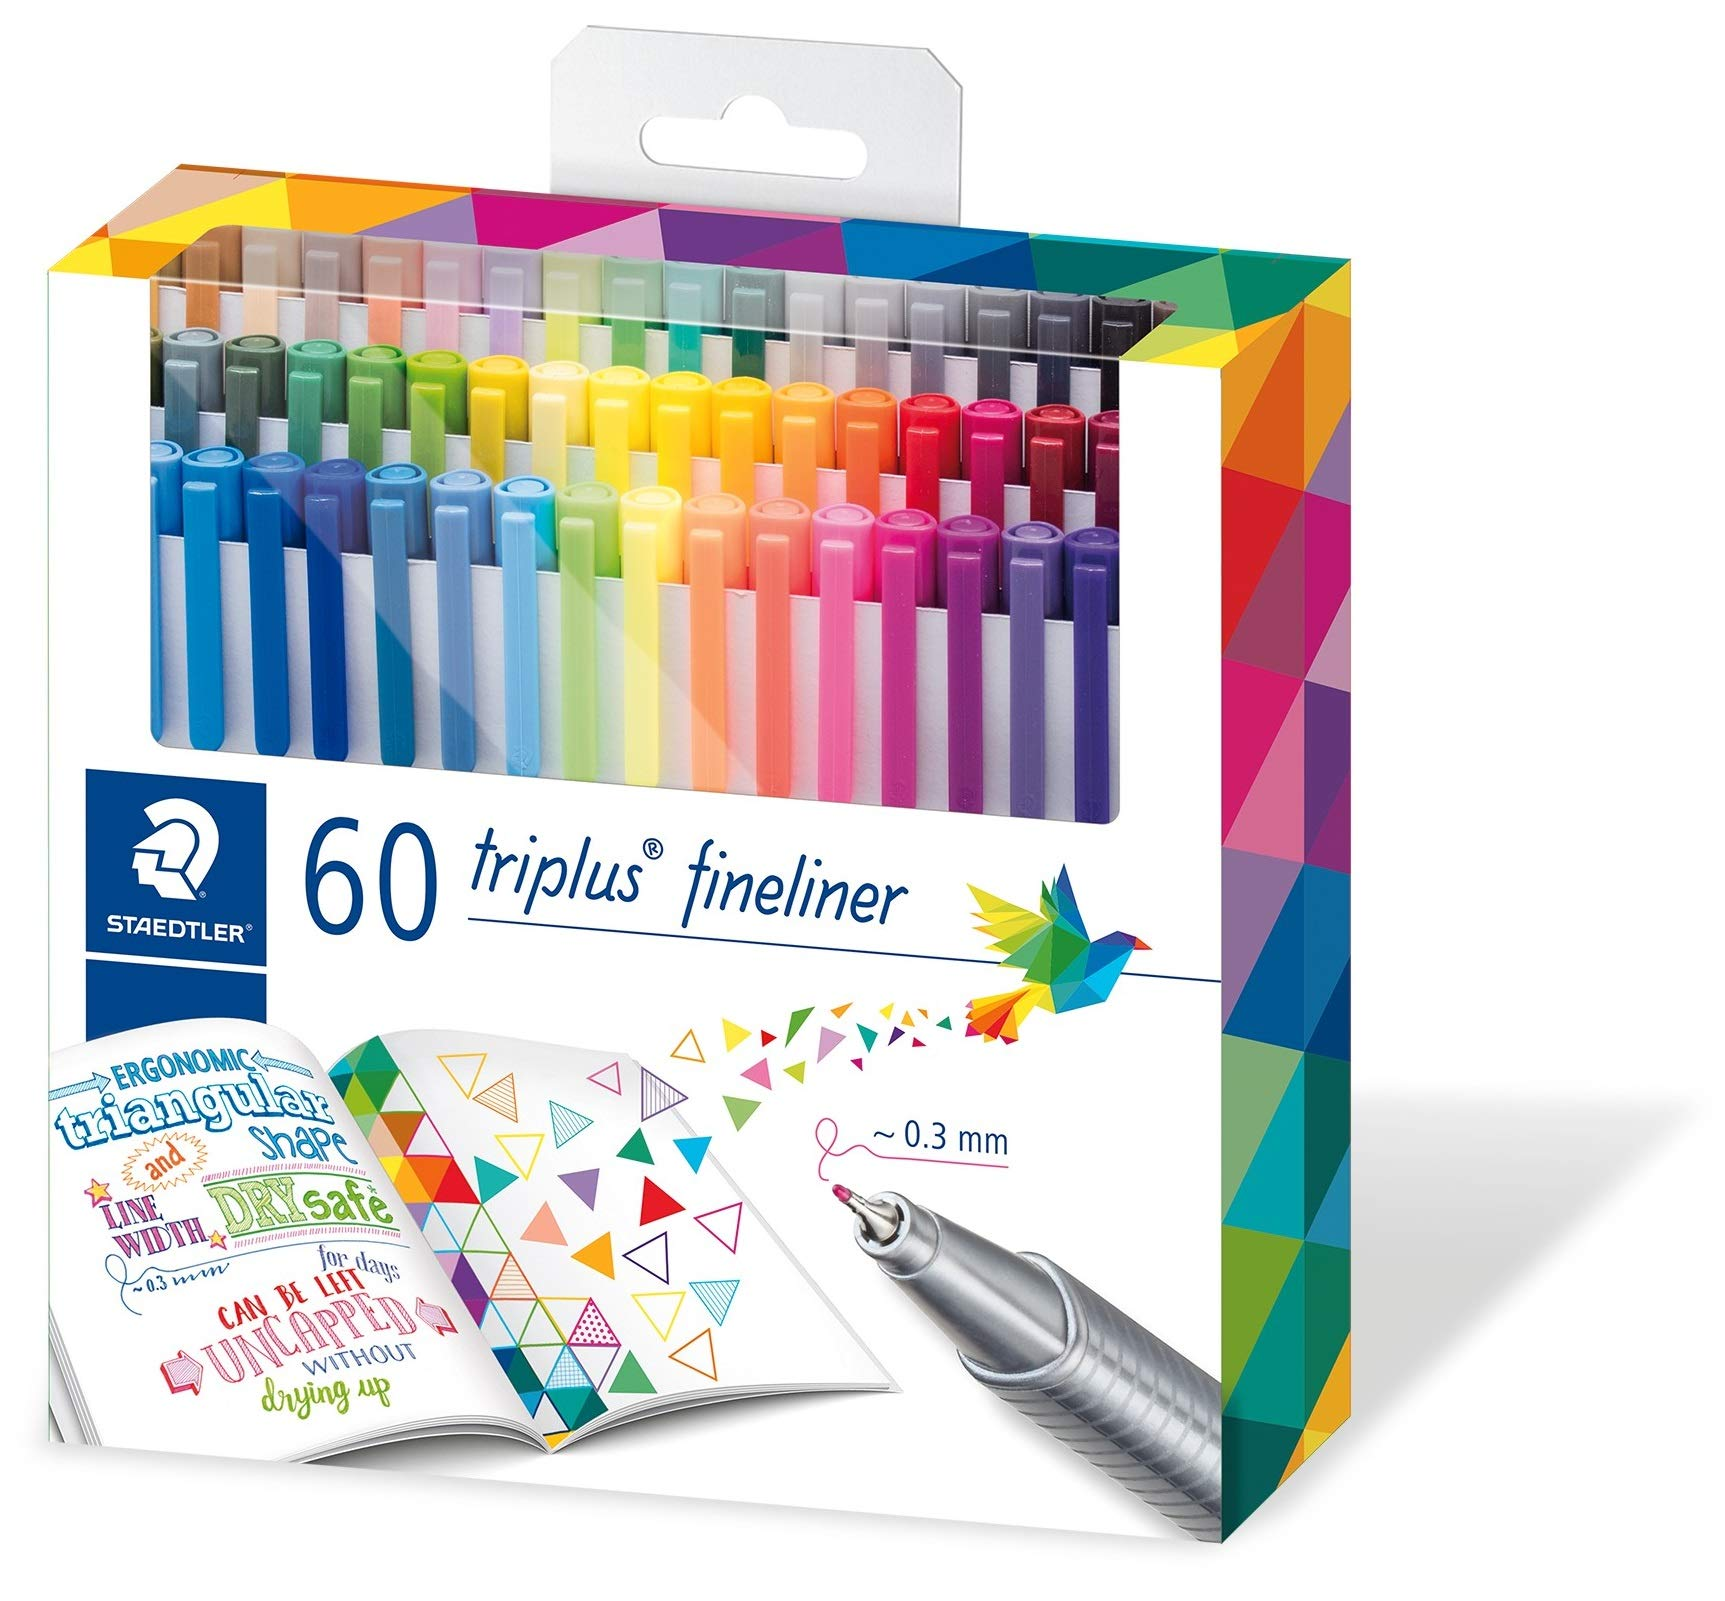 Staedtler triplus fineliner triangular, set with 60 brilliant colours, made in Germany, super fine, metal-clad tip, line width approx. 0.3 mm, 334 C60